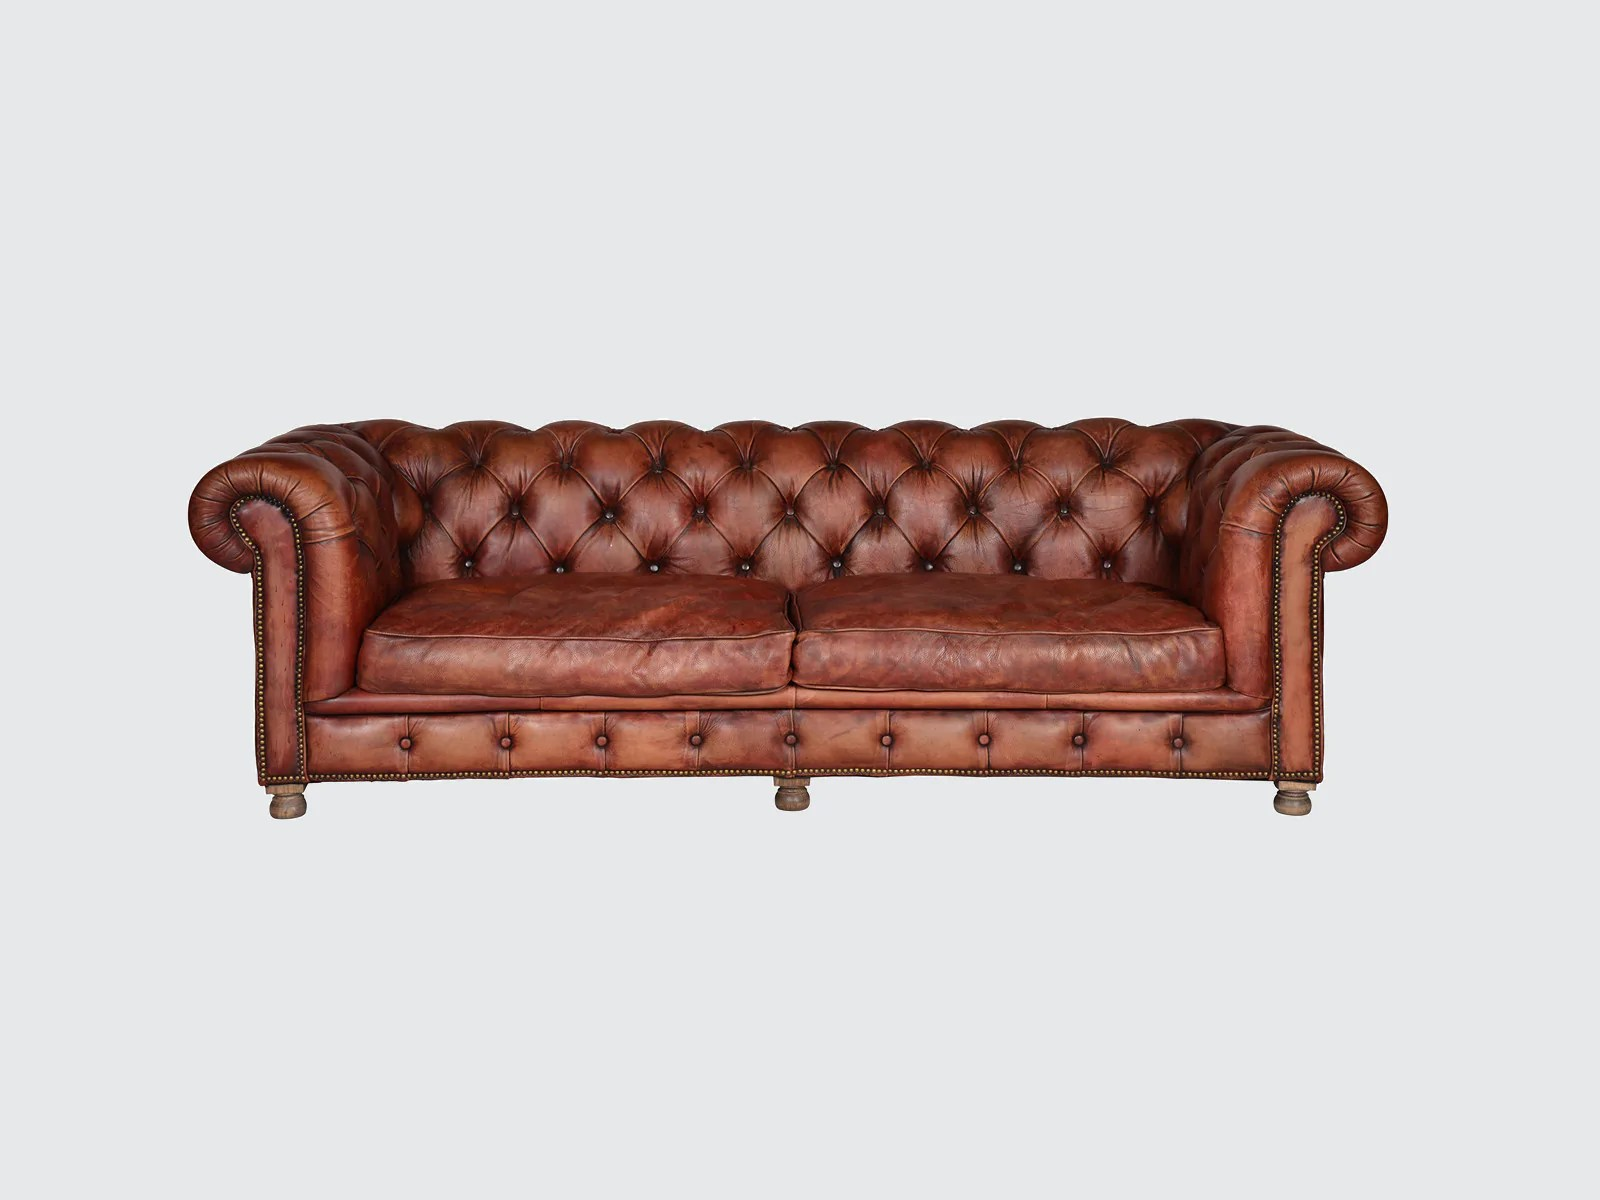 Westminster Sofa By Timothy Oulton Dawson And Co Auckland Dawson Co